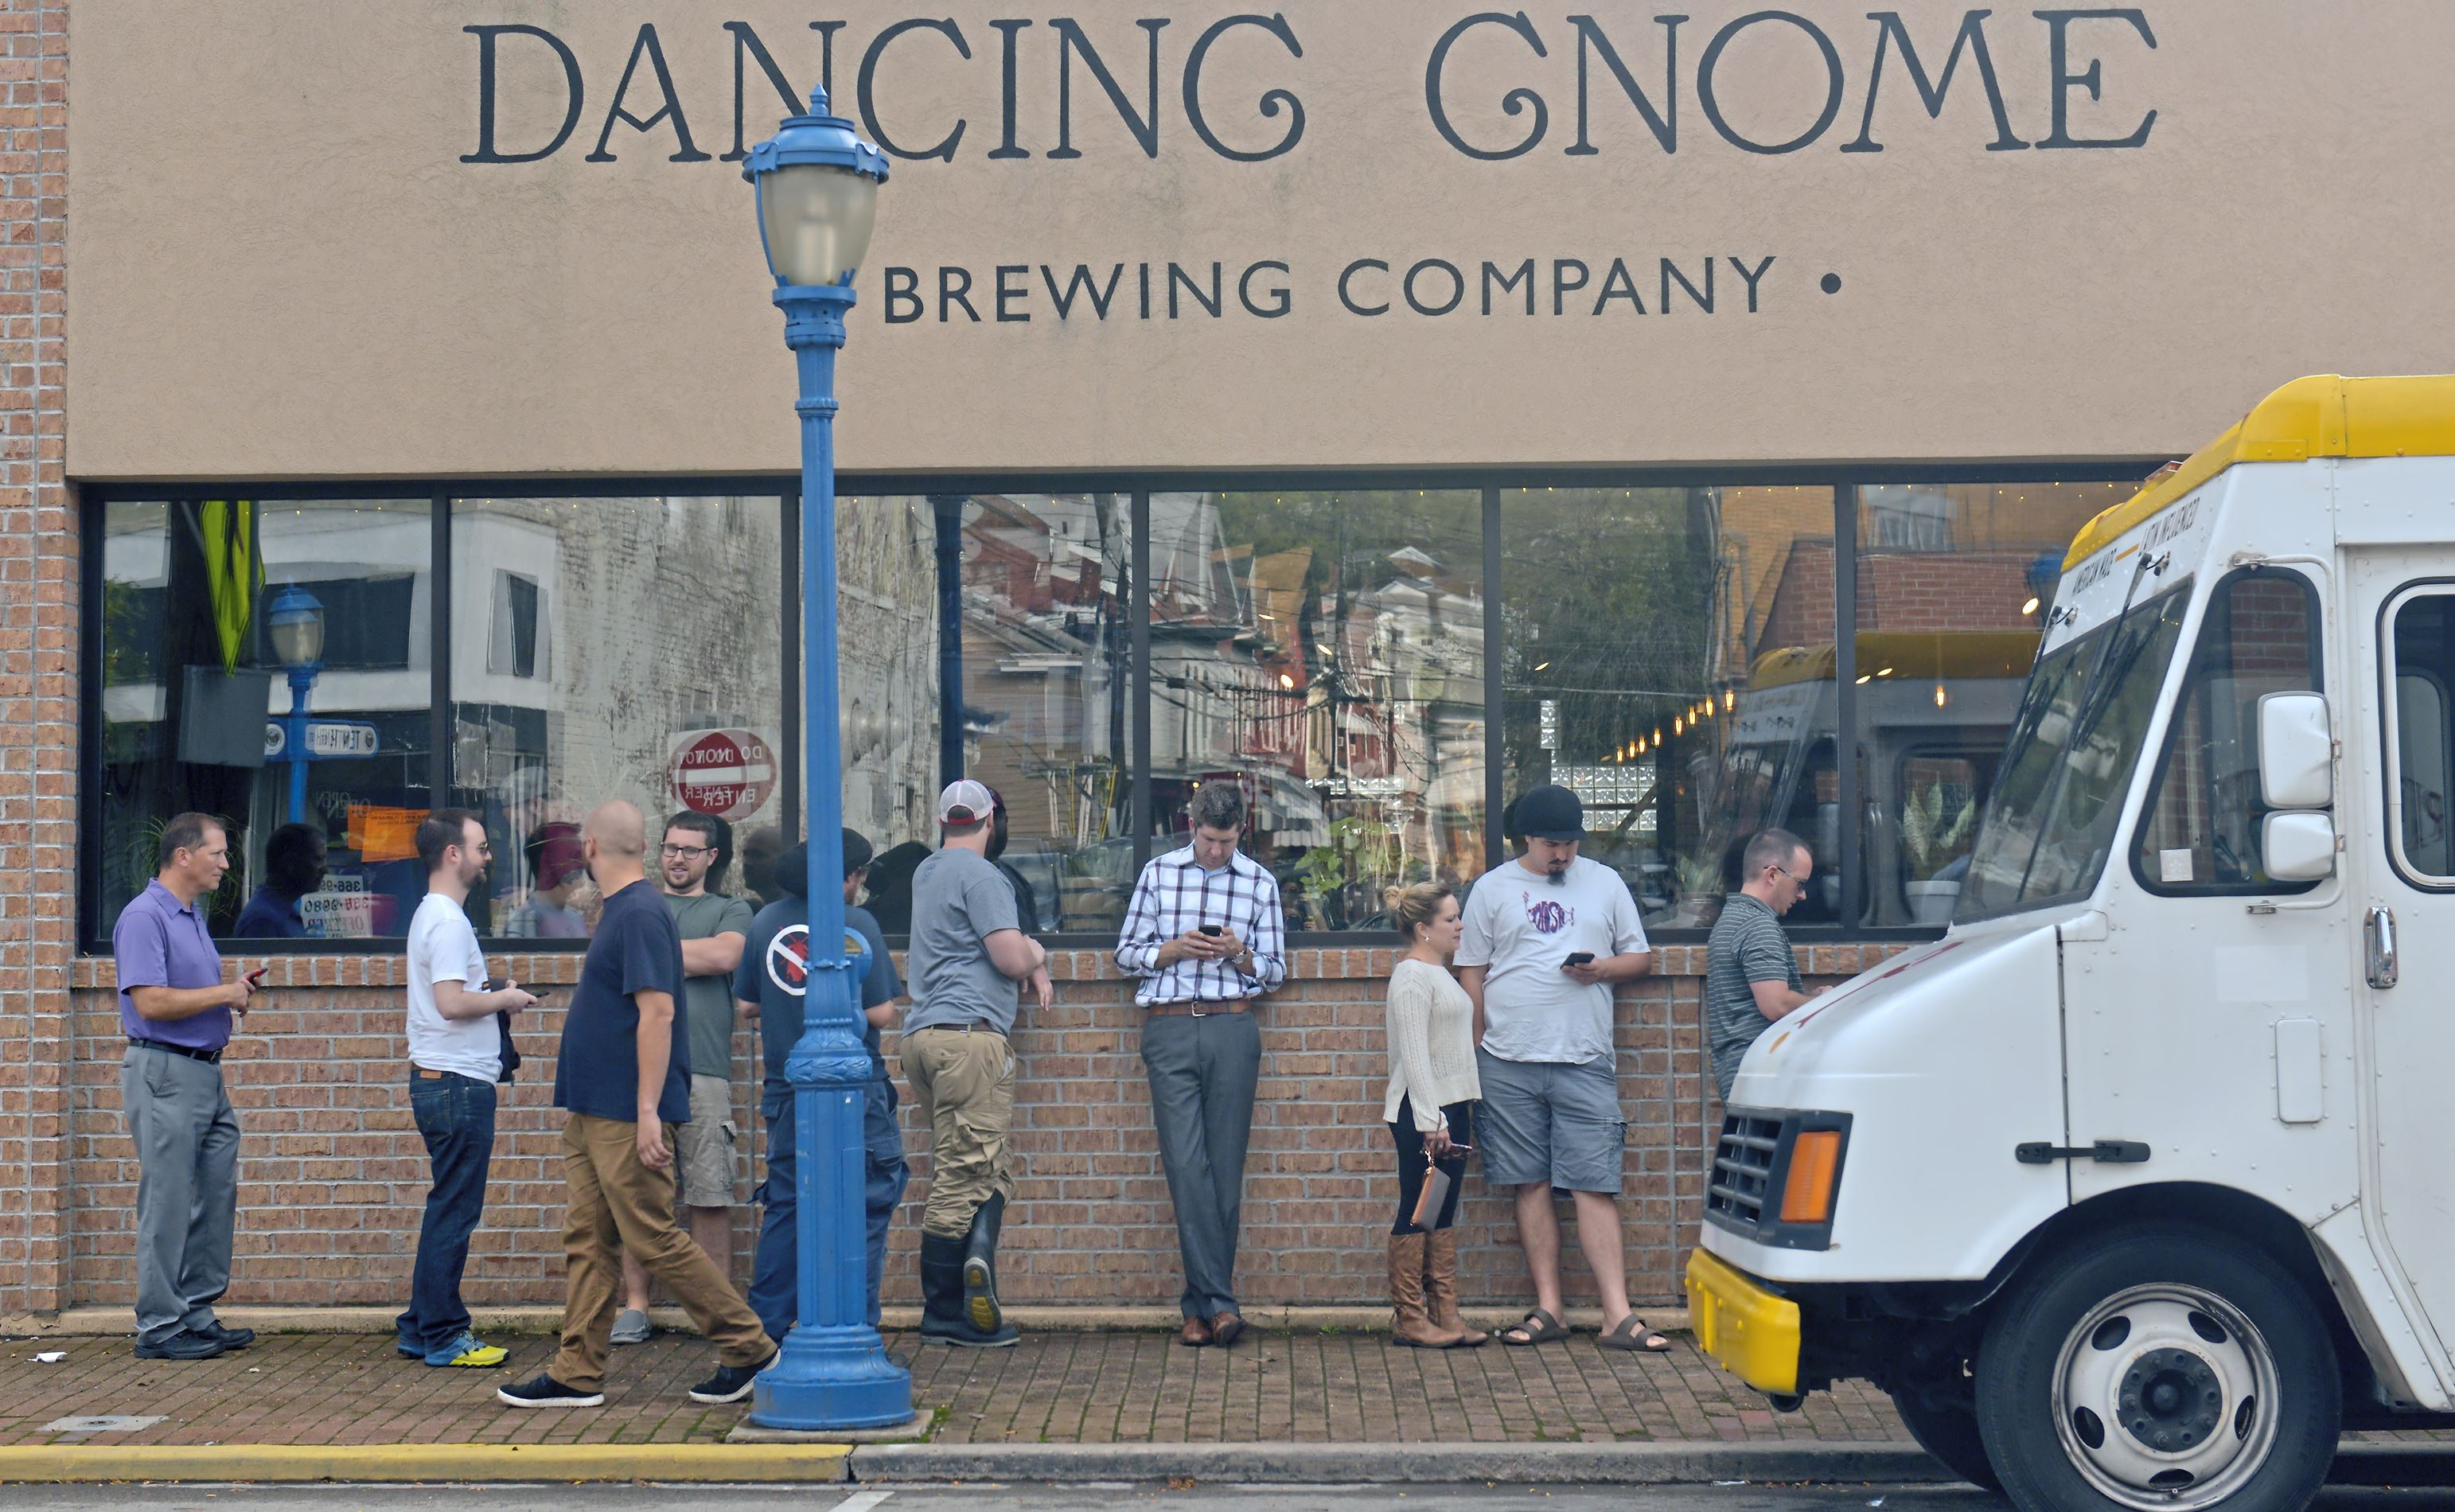 20171011ppDancingGnome2MAG-1 Patrons line up in front of the Dancing Gnome Brewing Company for the release of their new brew, Double Lustra Wednesday, October 11, 2017 in Sharpsburg.